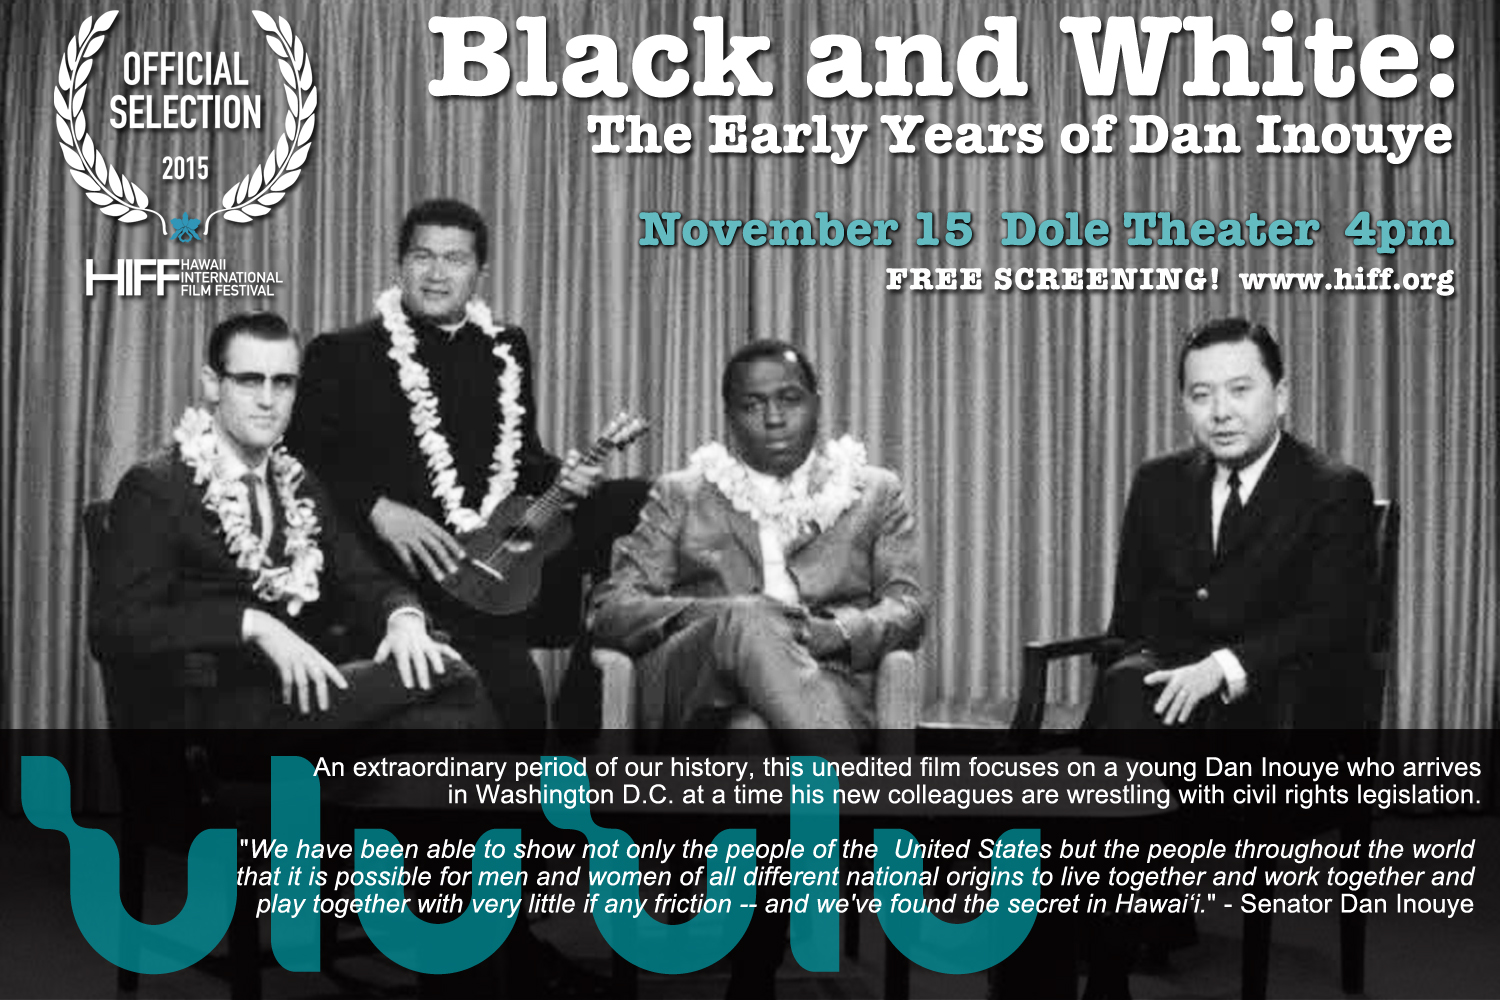 Black and White: The Early Years of Dan Inouye